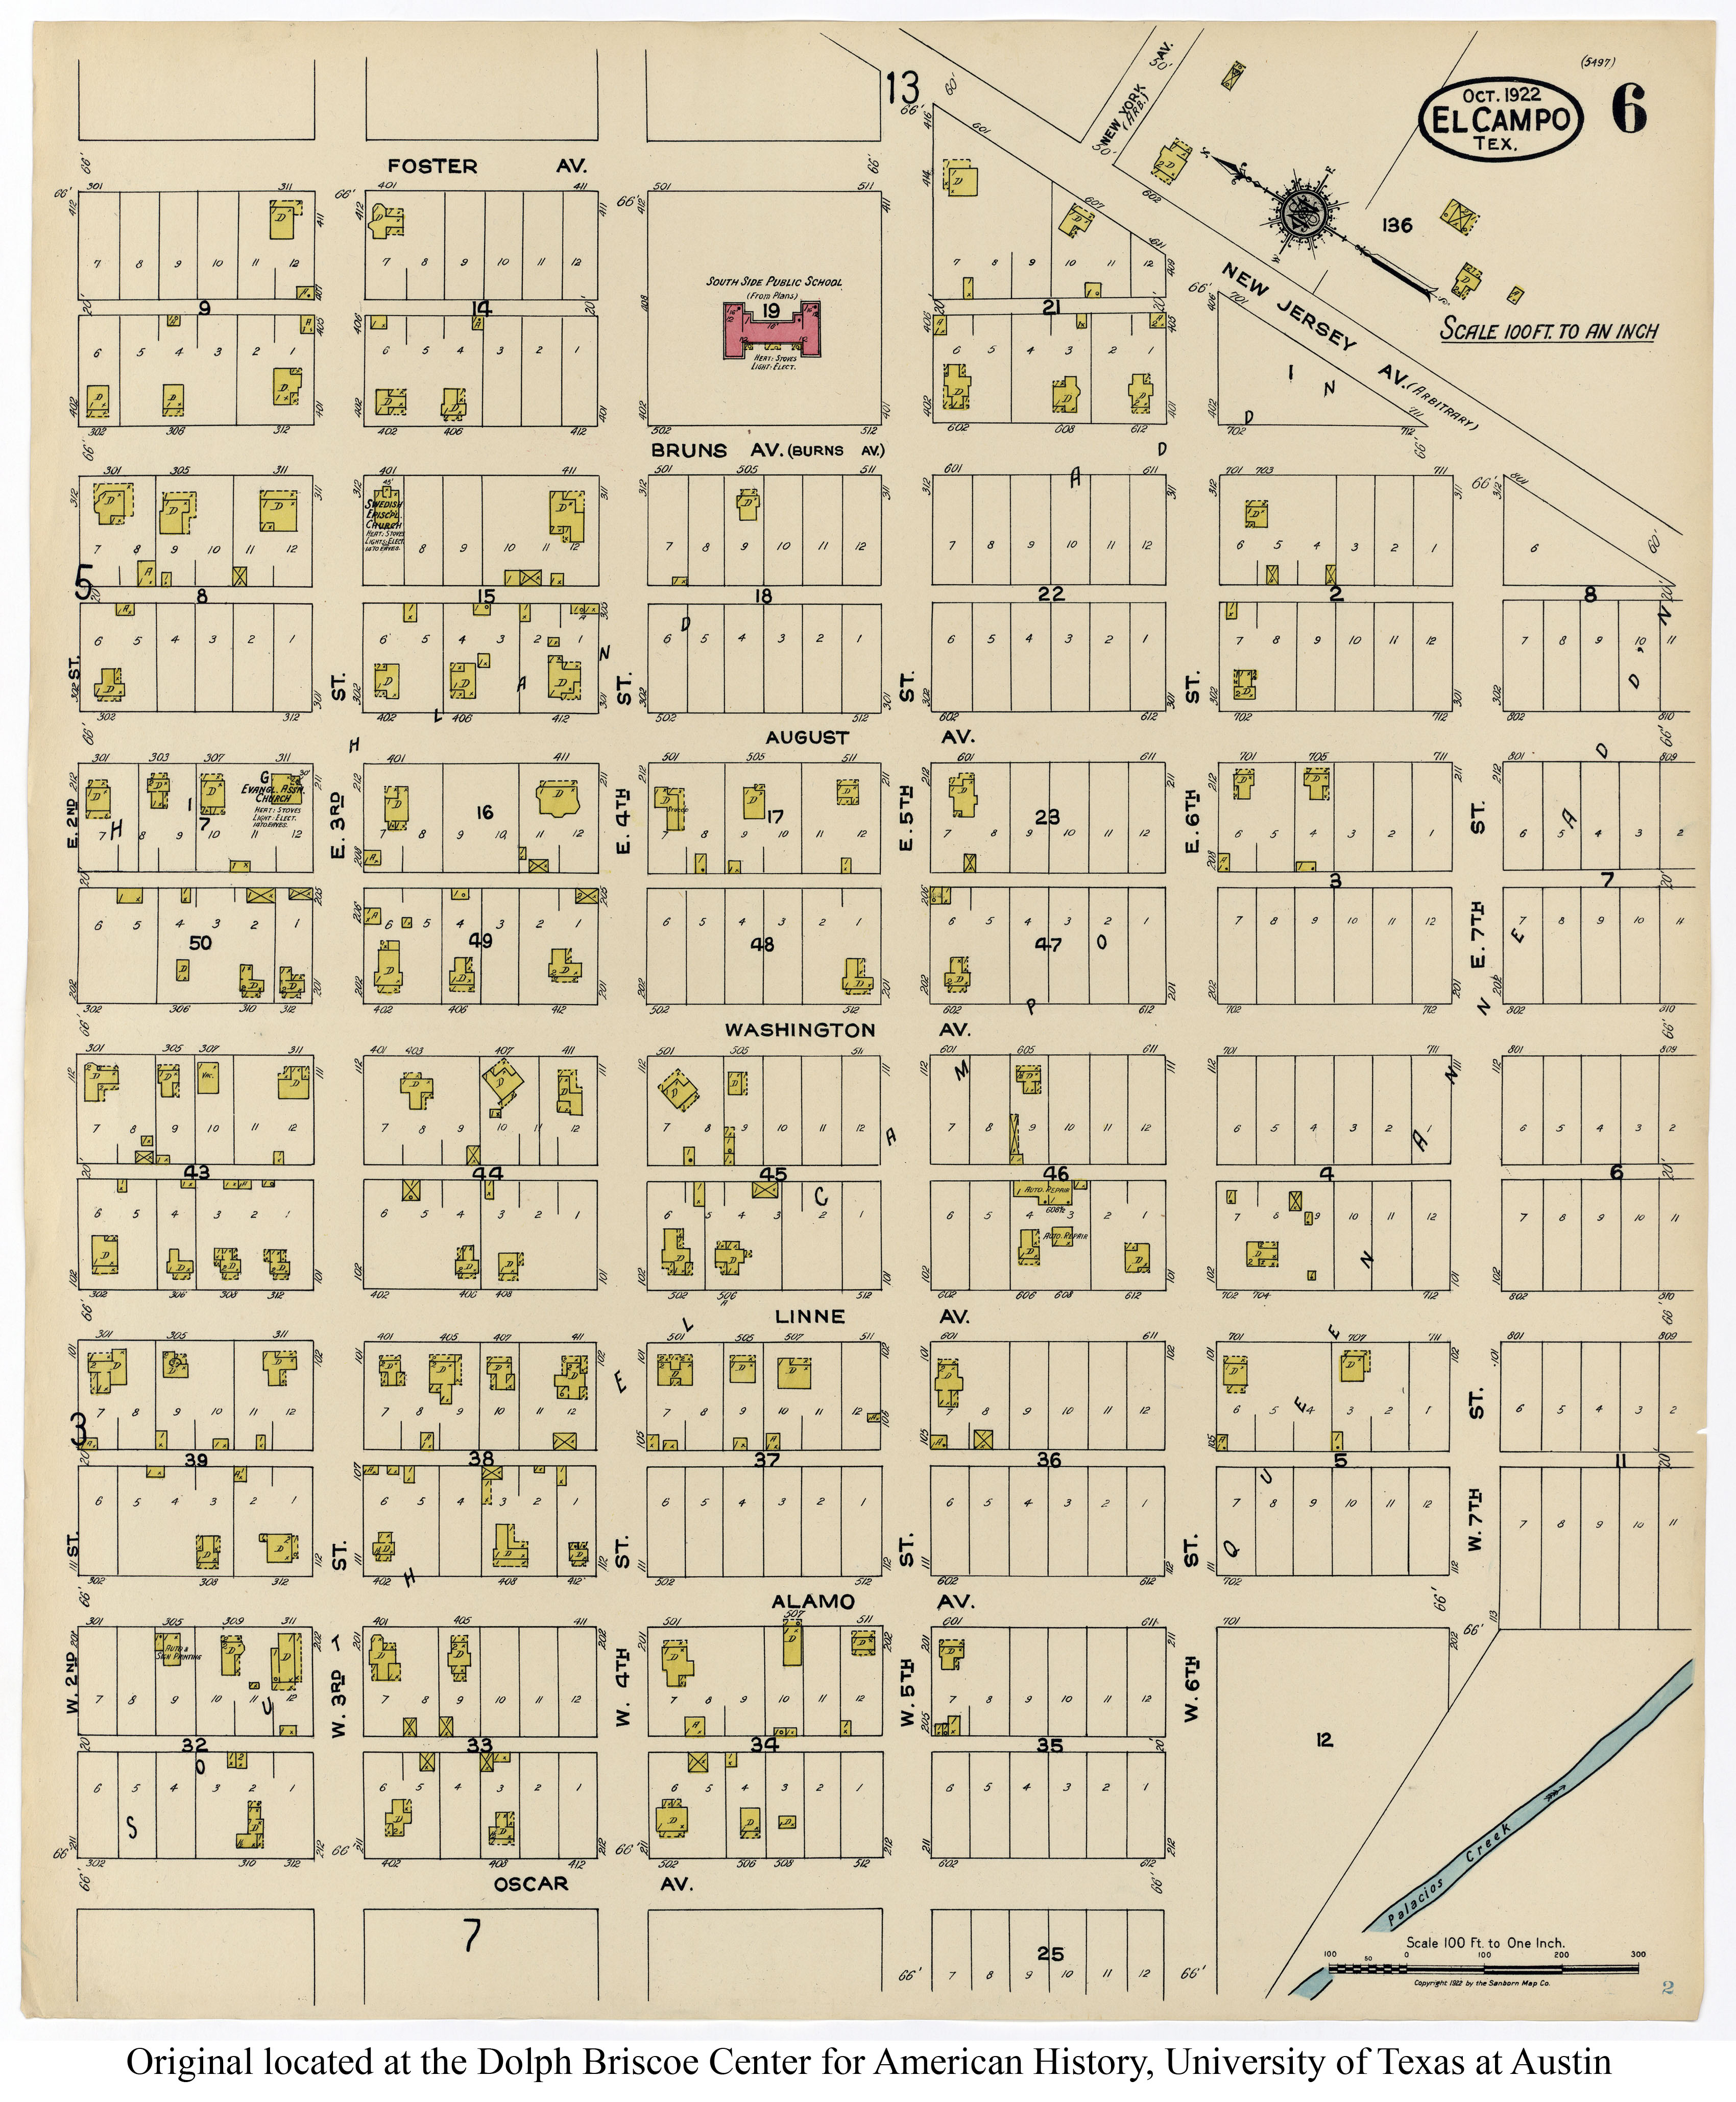 Sanborn Maps of Texas - Perry-Castañeda Map Collection - UT Library ...